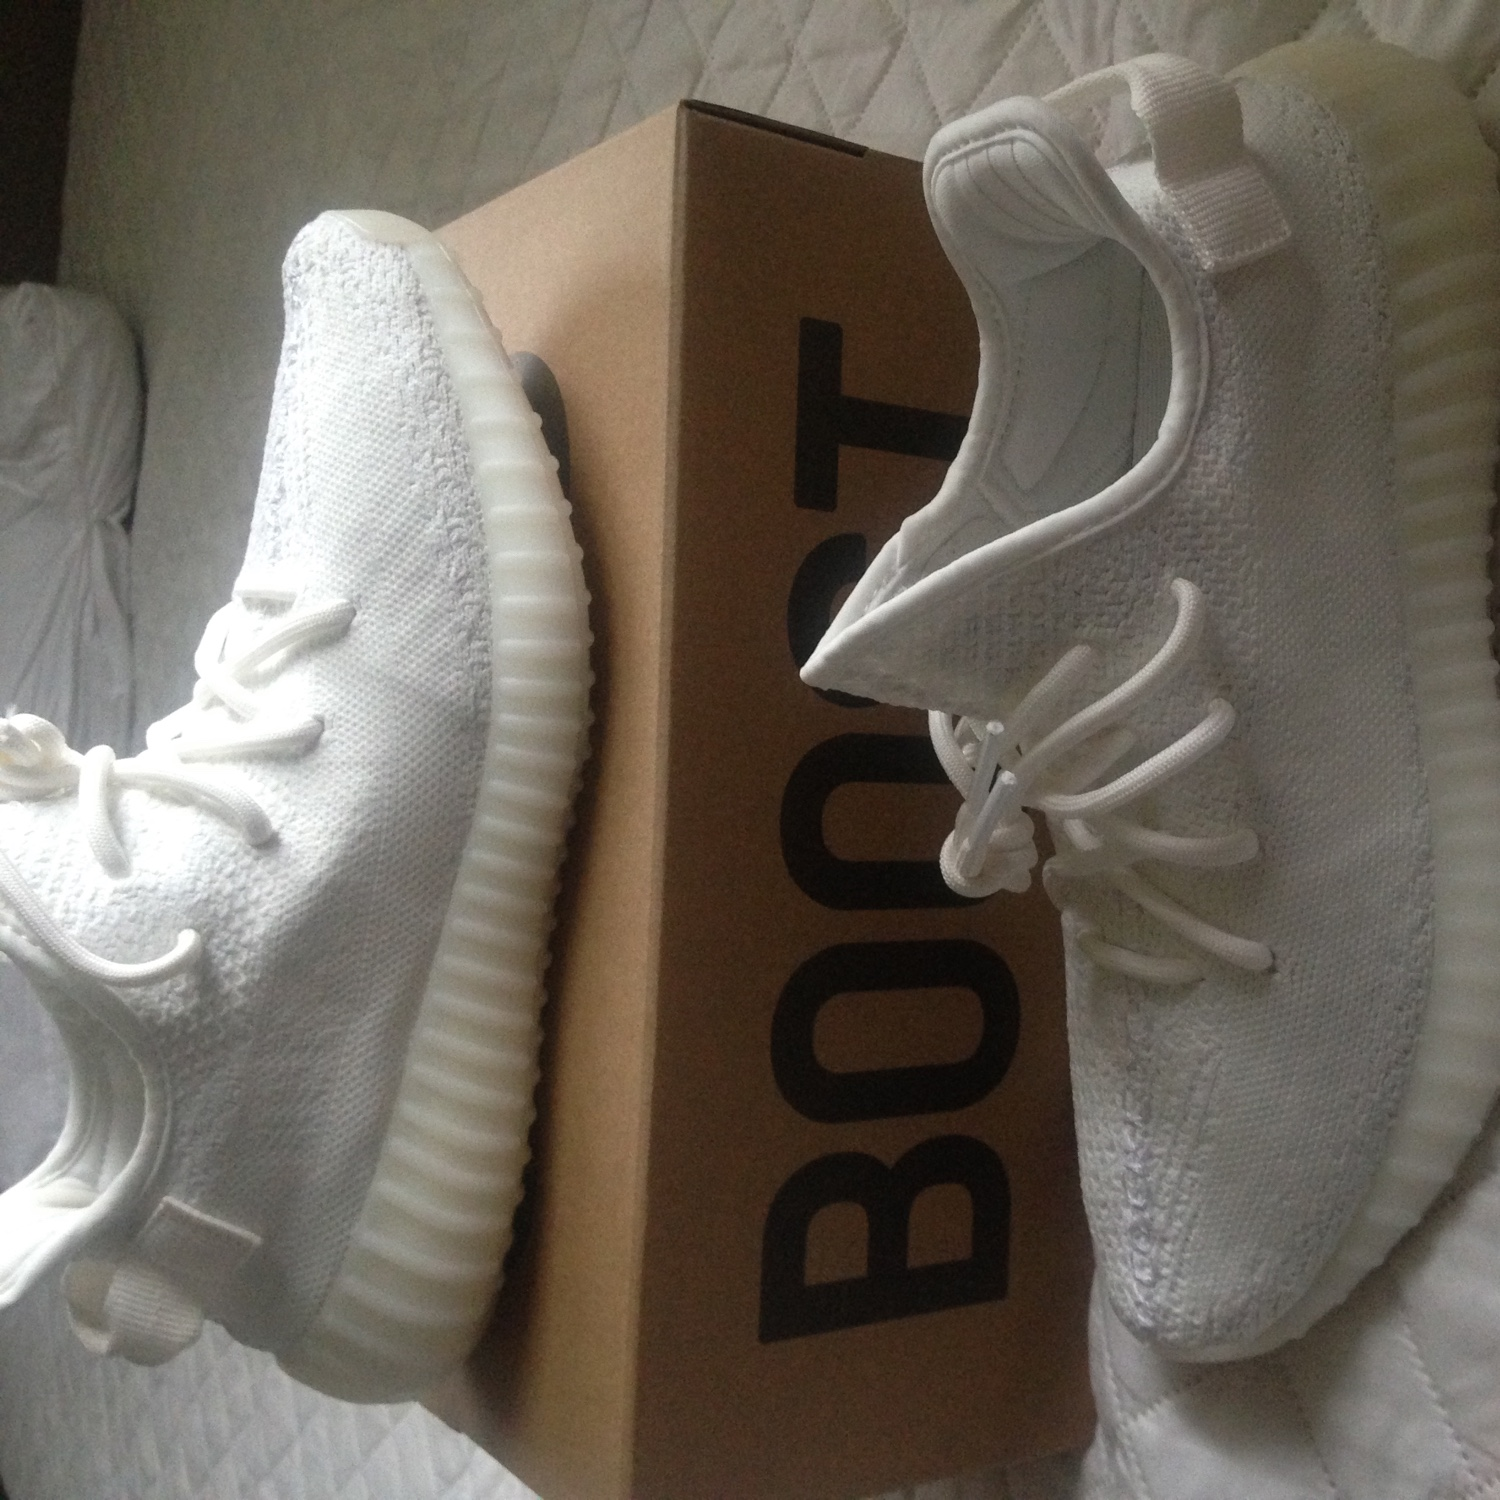 Cheap Adidas YEEZY BOOST 350 v2 UK 9 BB 1826 (# 890536) from pand at